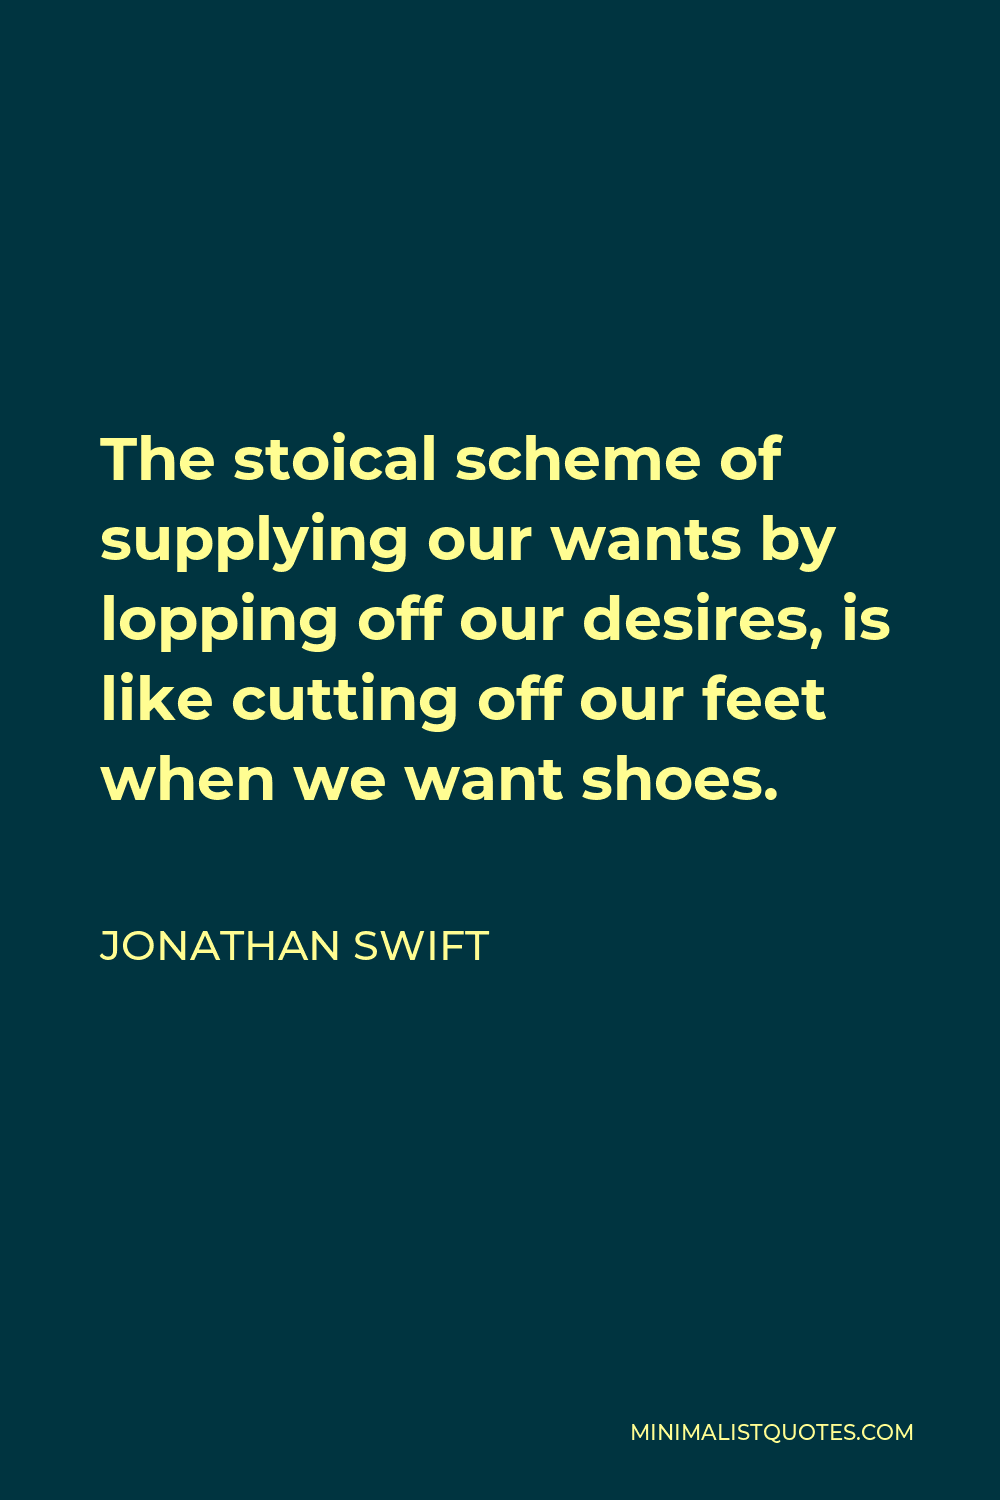 Jonathan Swift Quote - The stoical scheme of supplying our wants by lopping off our desires, is like cutting off our feet when we want shoes.